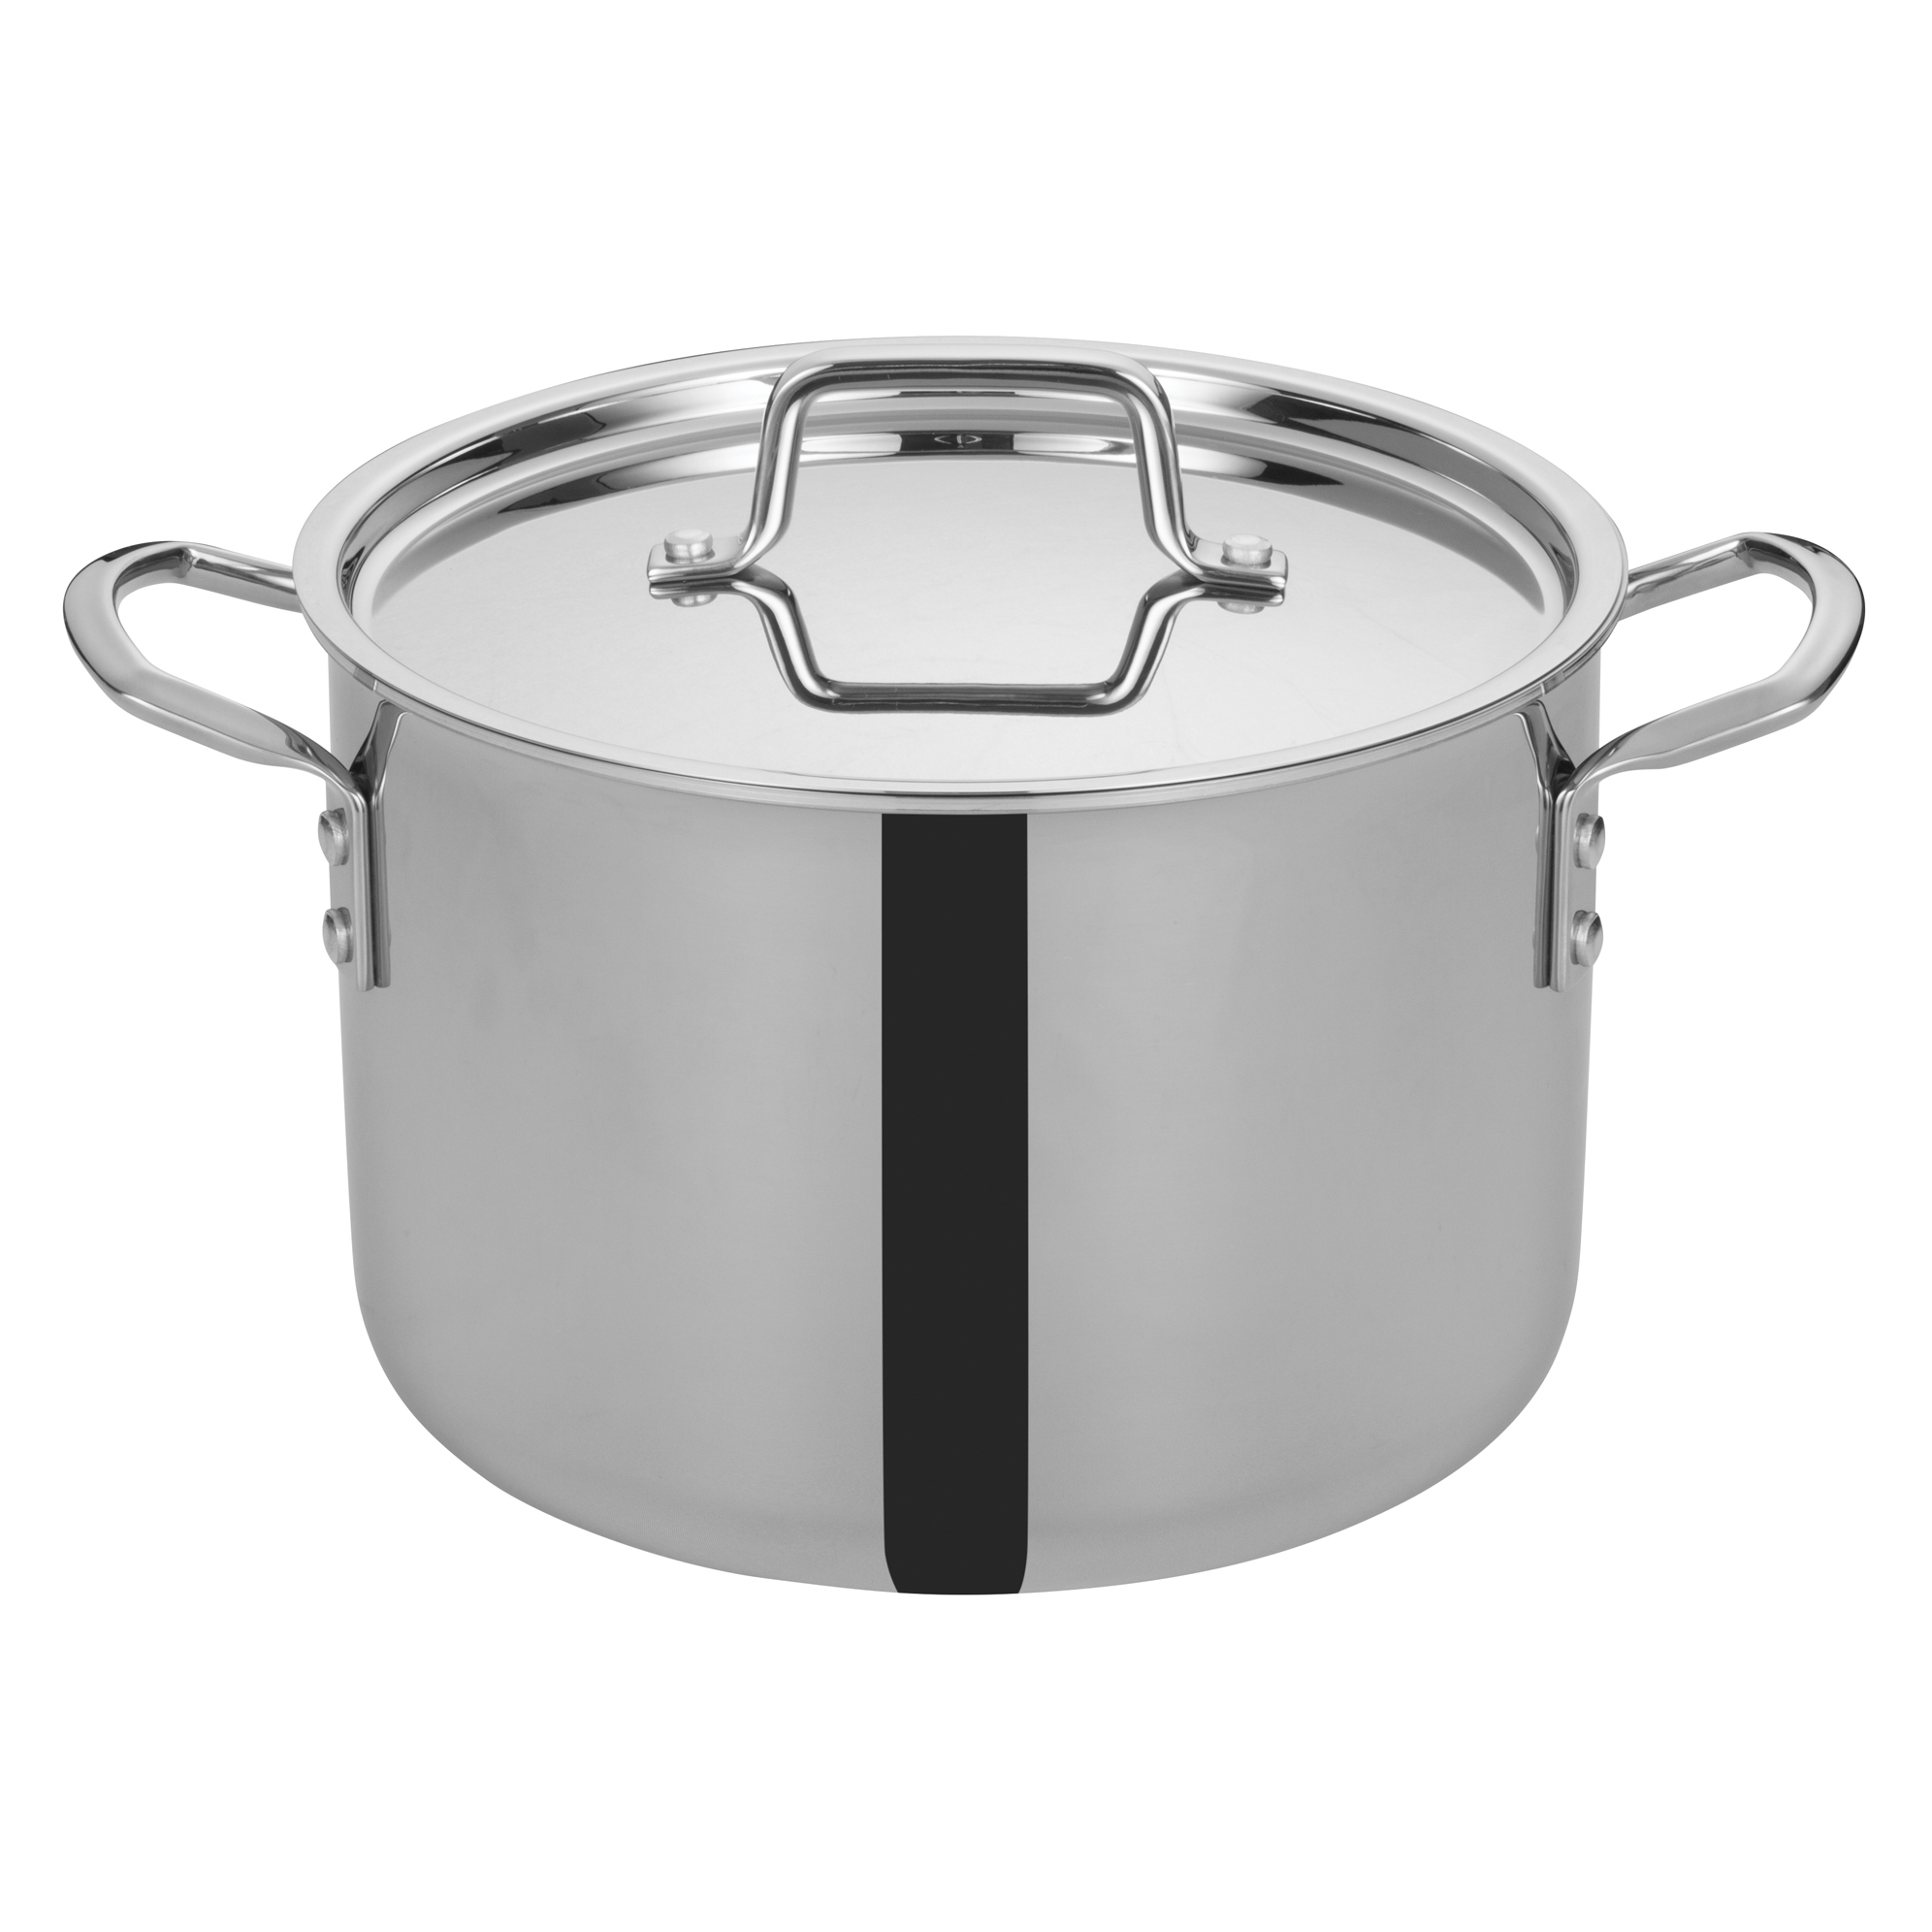 Winco TGSP-8 stock pot